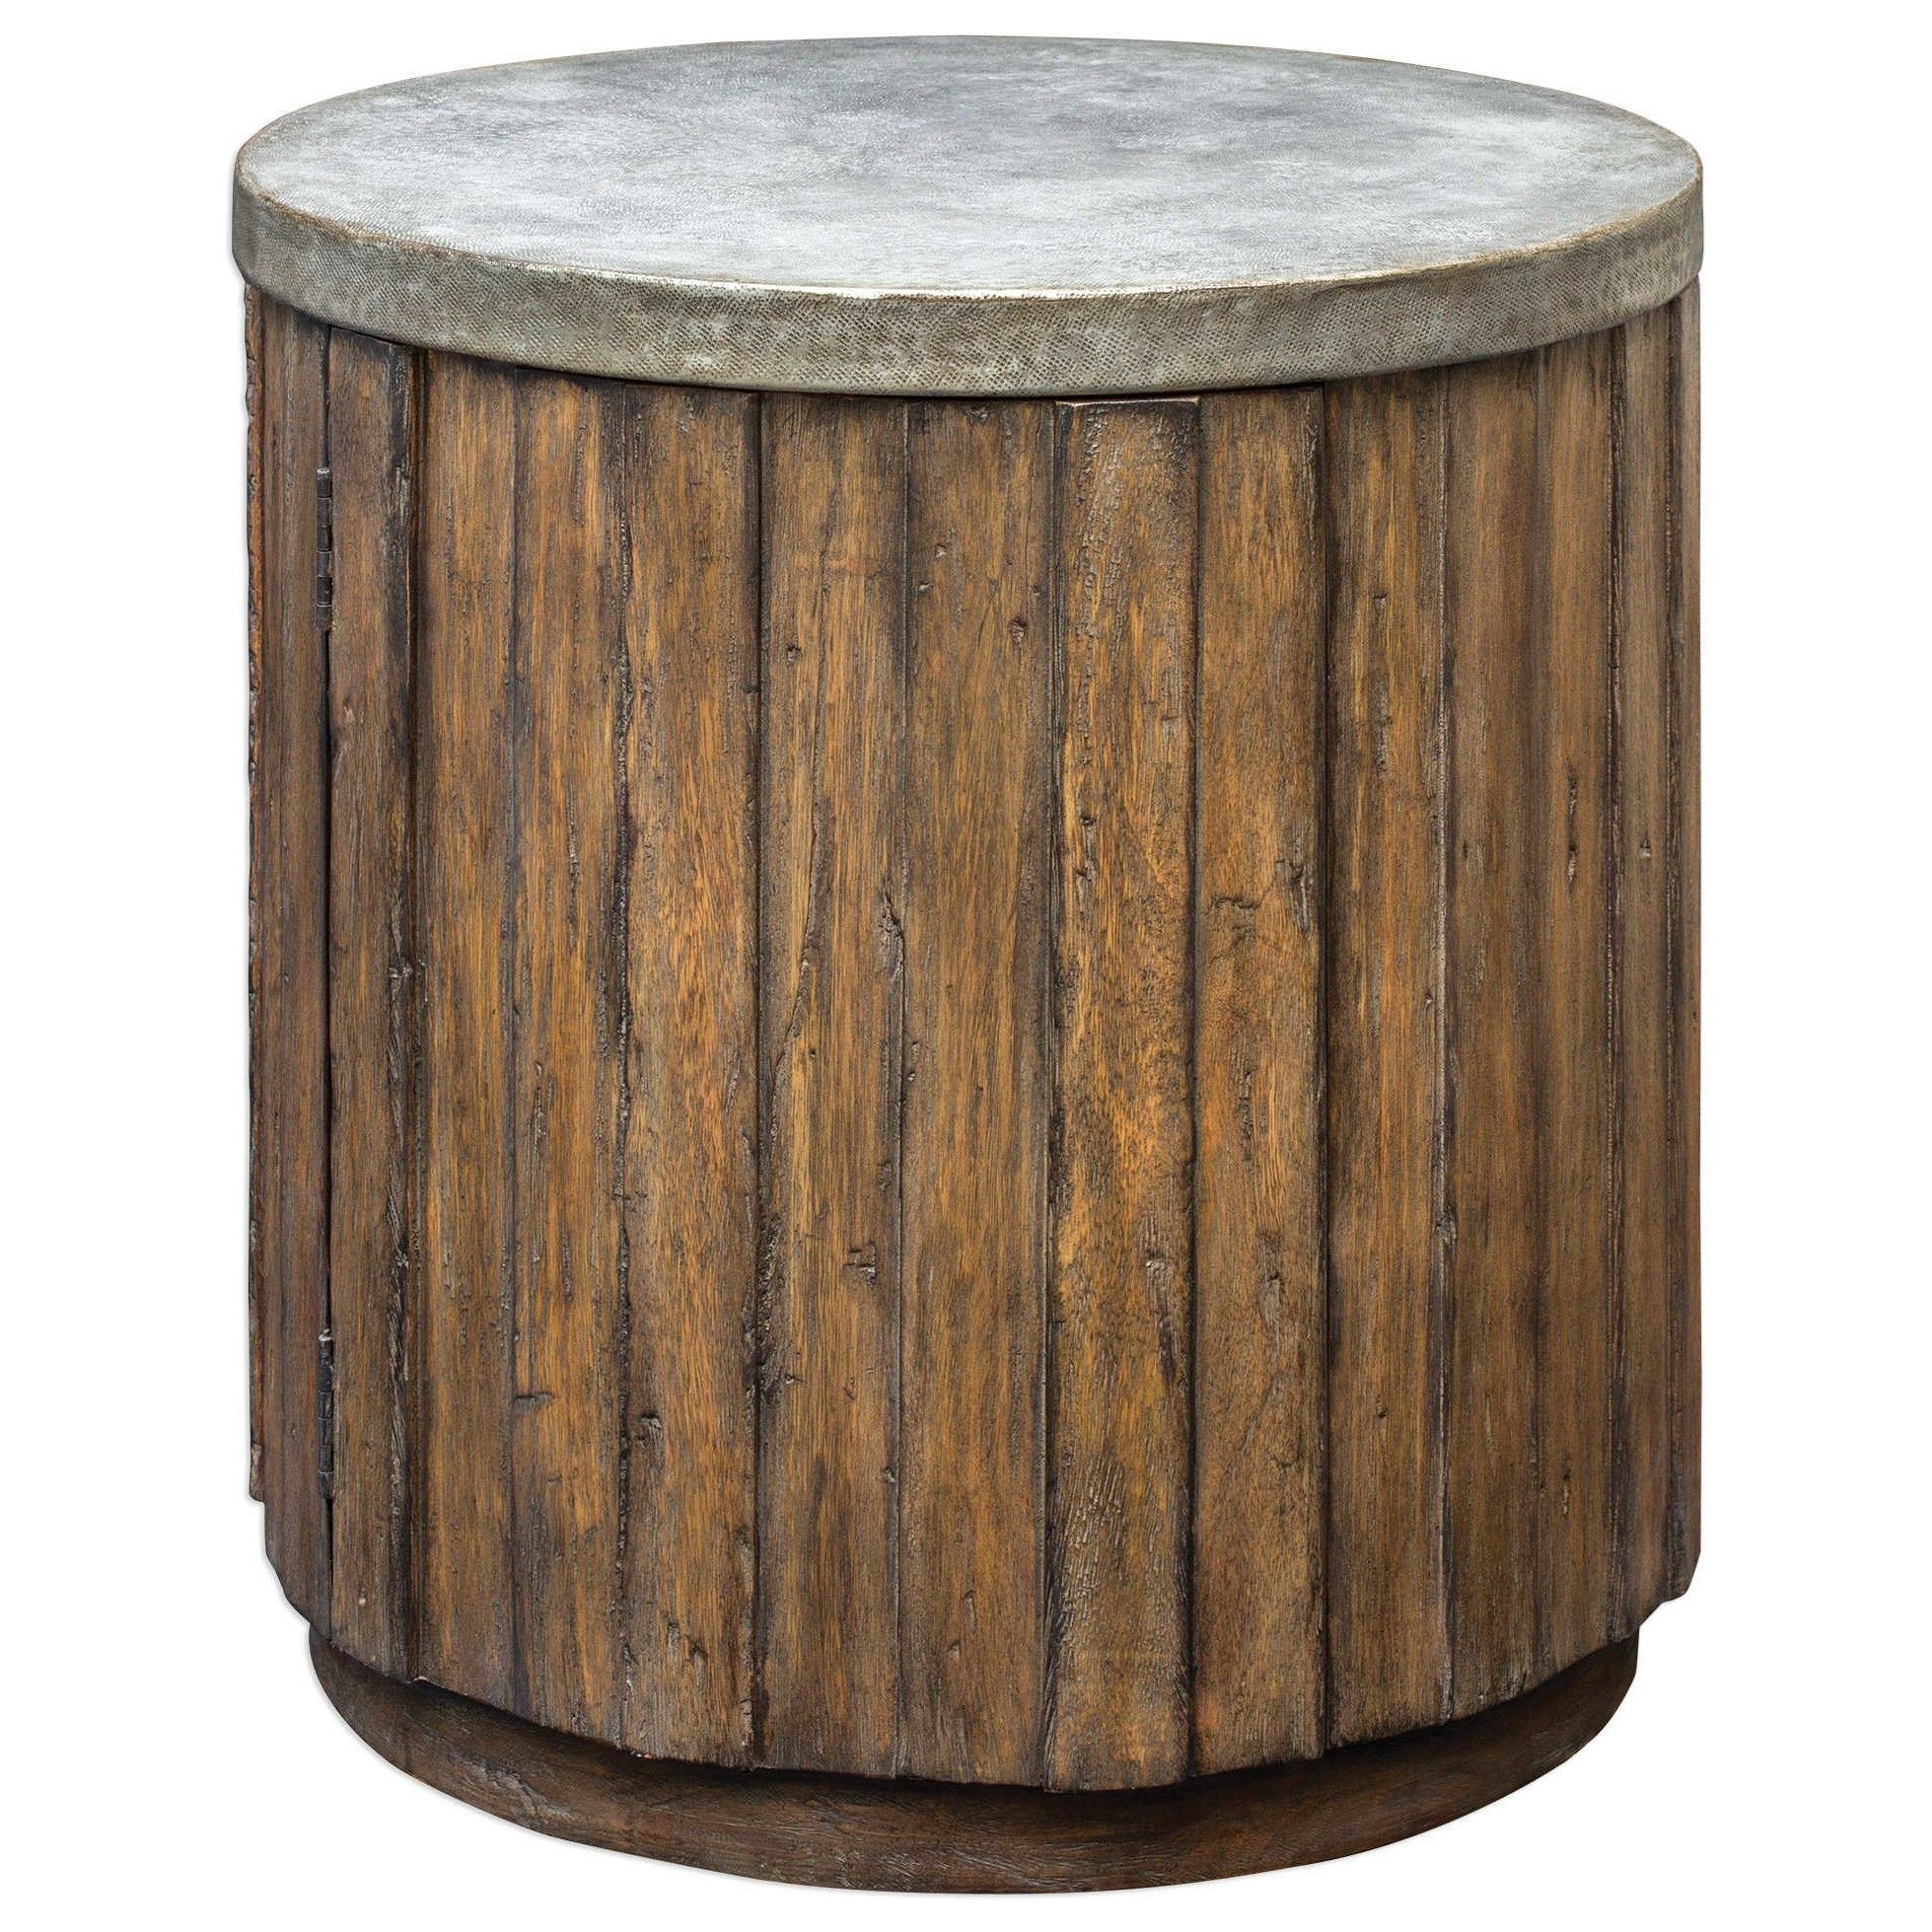 Accent Furniture - Occasional Tables Maxfield Wooden Drum Accent Table by Uttermost at Goffena Furniture & Mattress Center